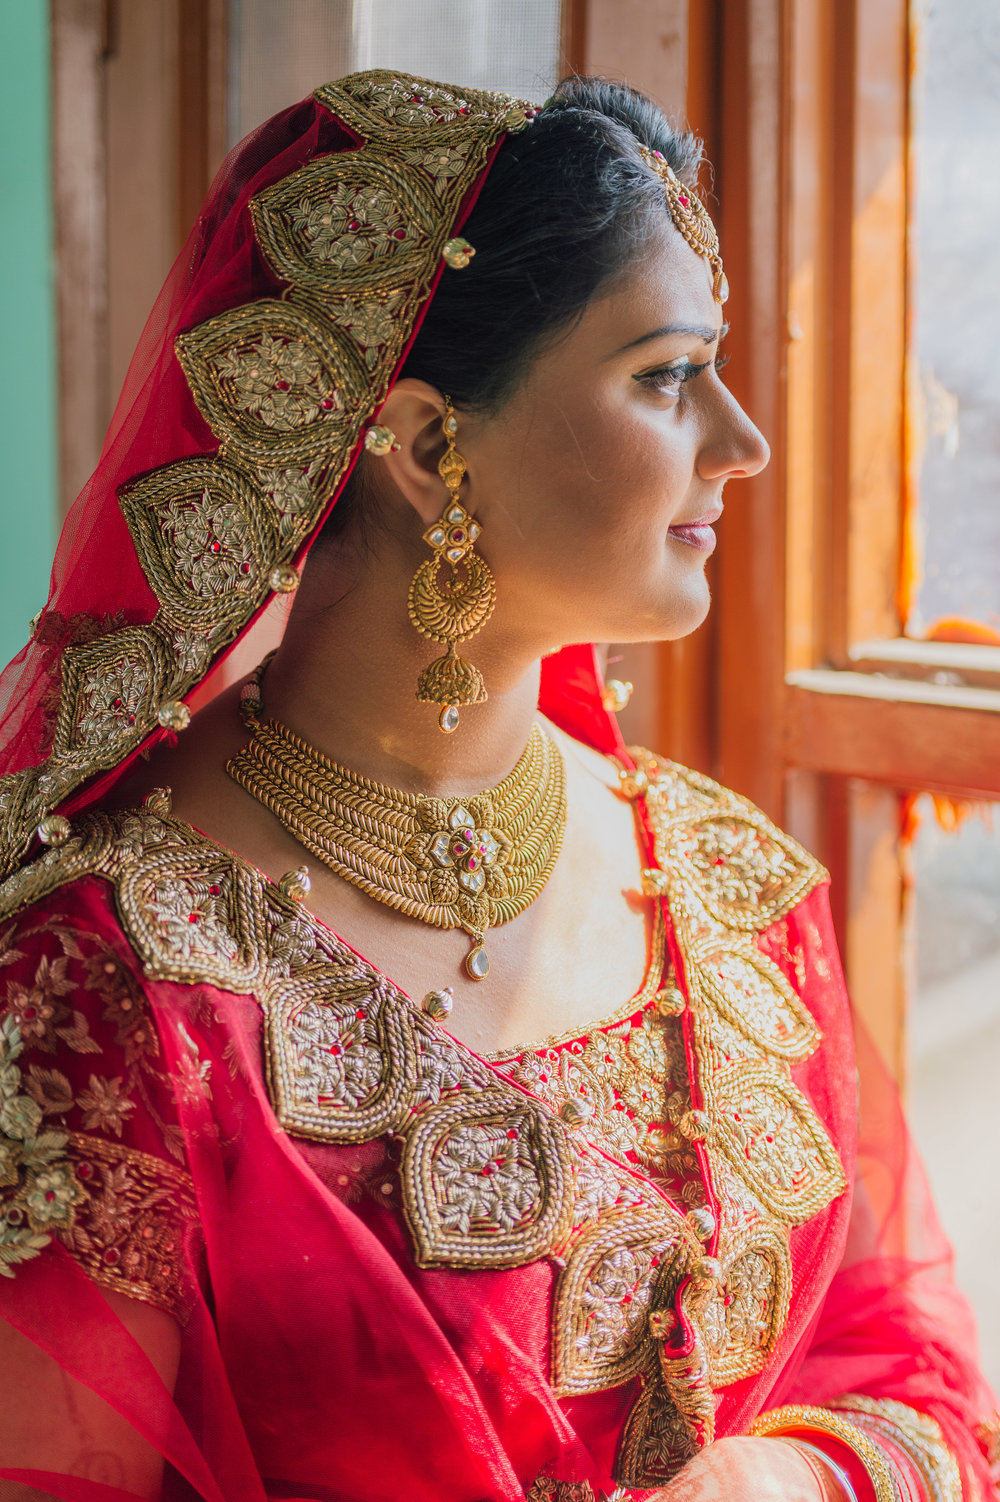 Take a look at how intricate the embroidery is on the bridal attire. Did you know that the dress that the bride wears for Anand Karaj must be red, as the colour symbolises auspiciousness and prosperity in the bride's new married life.